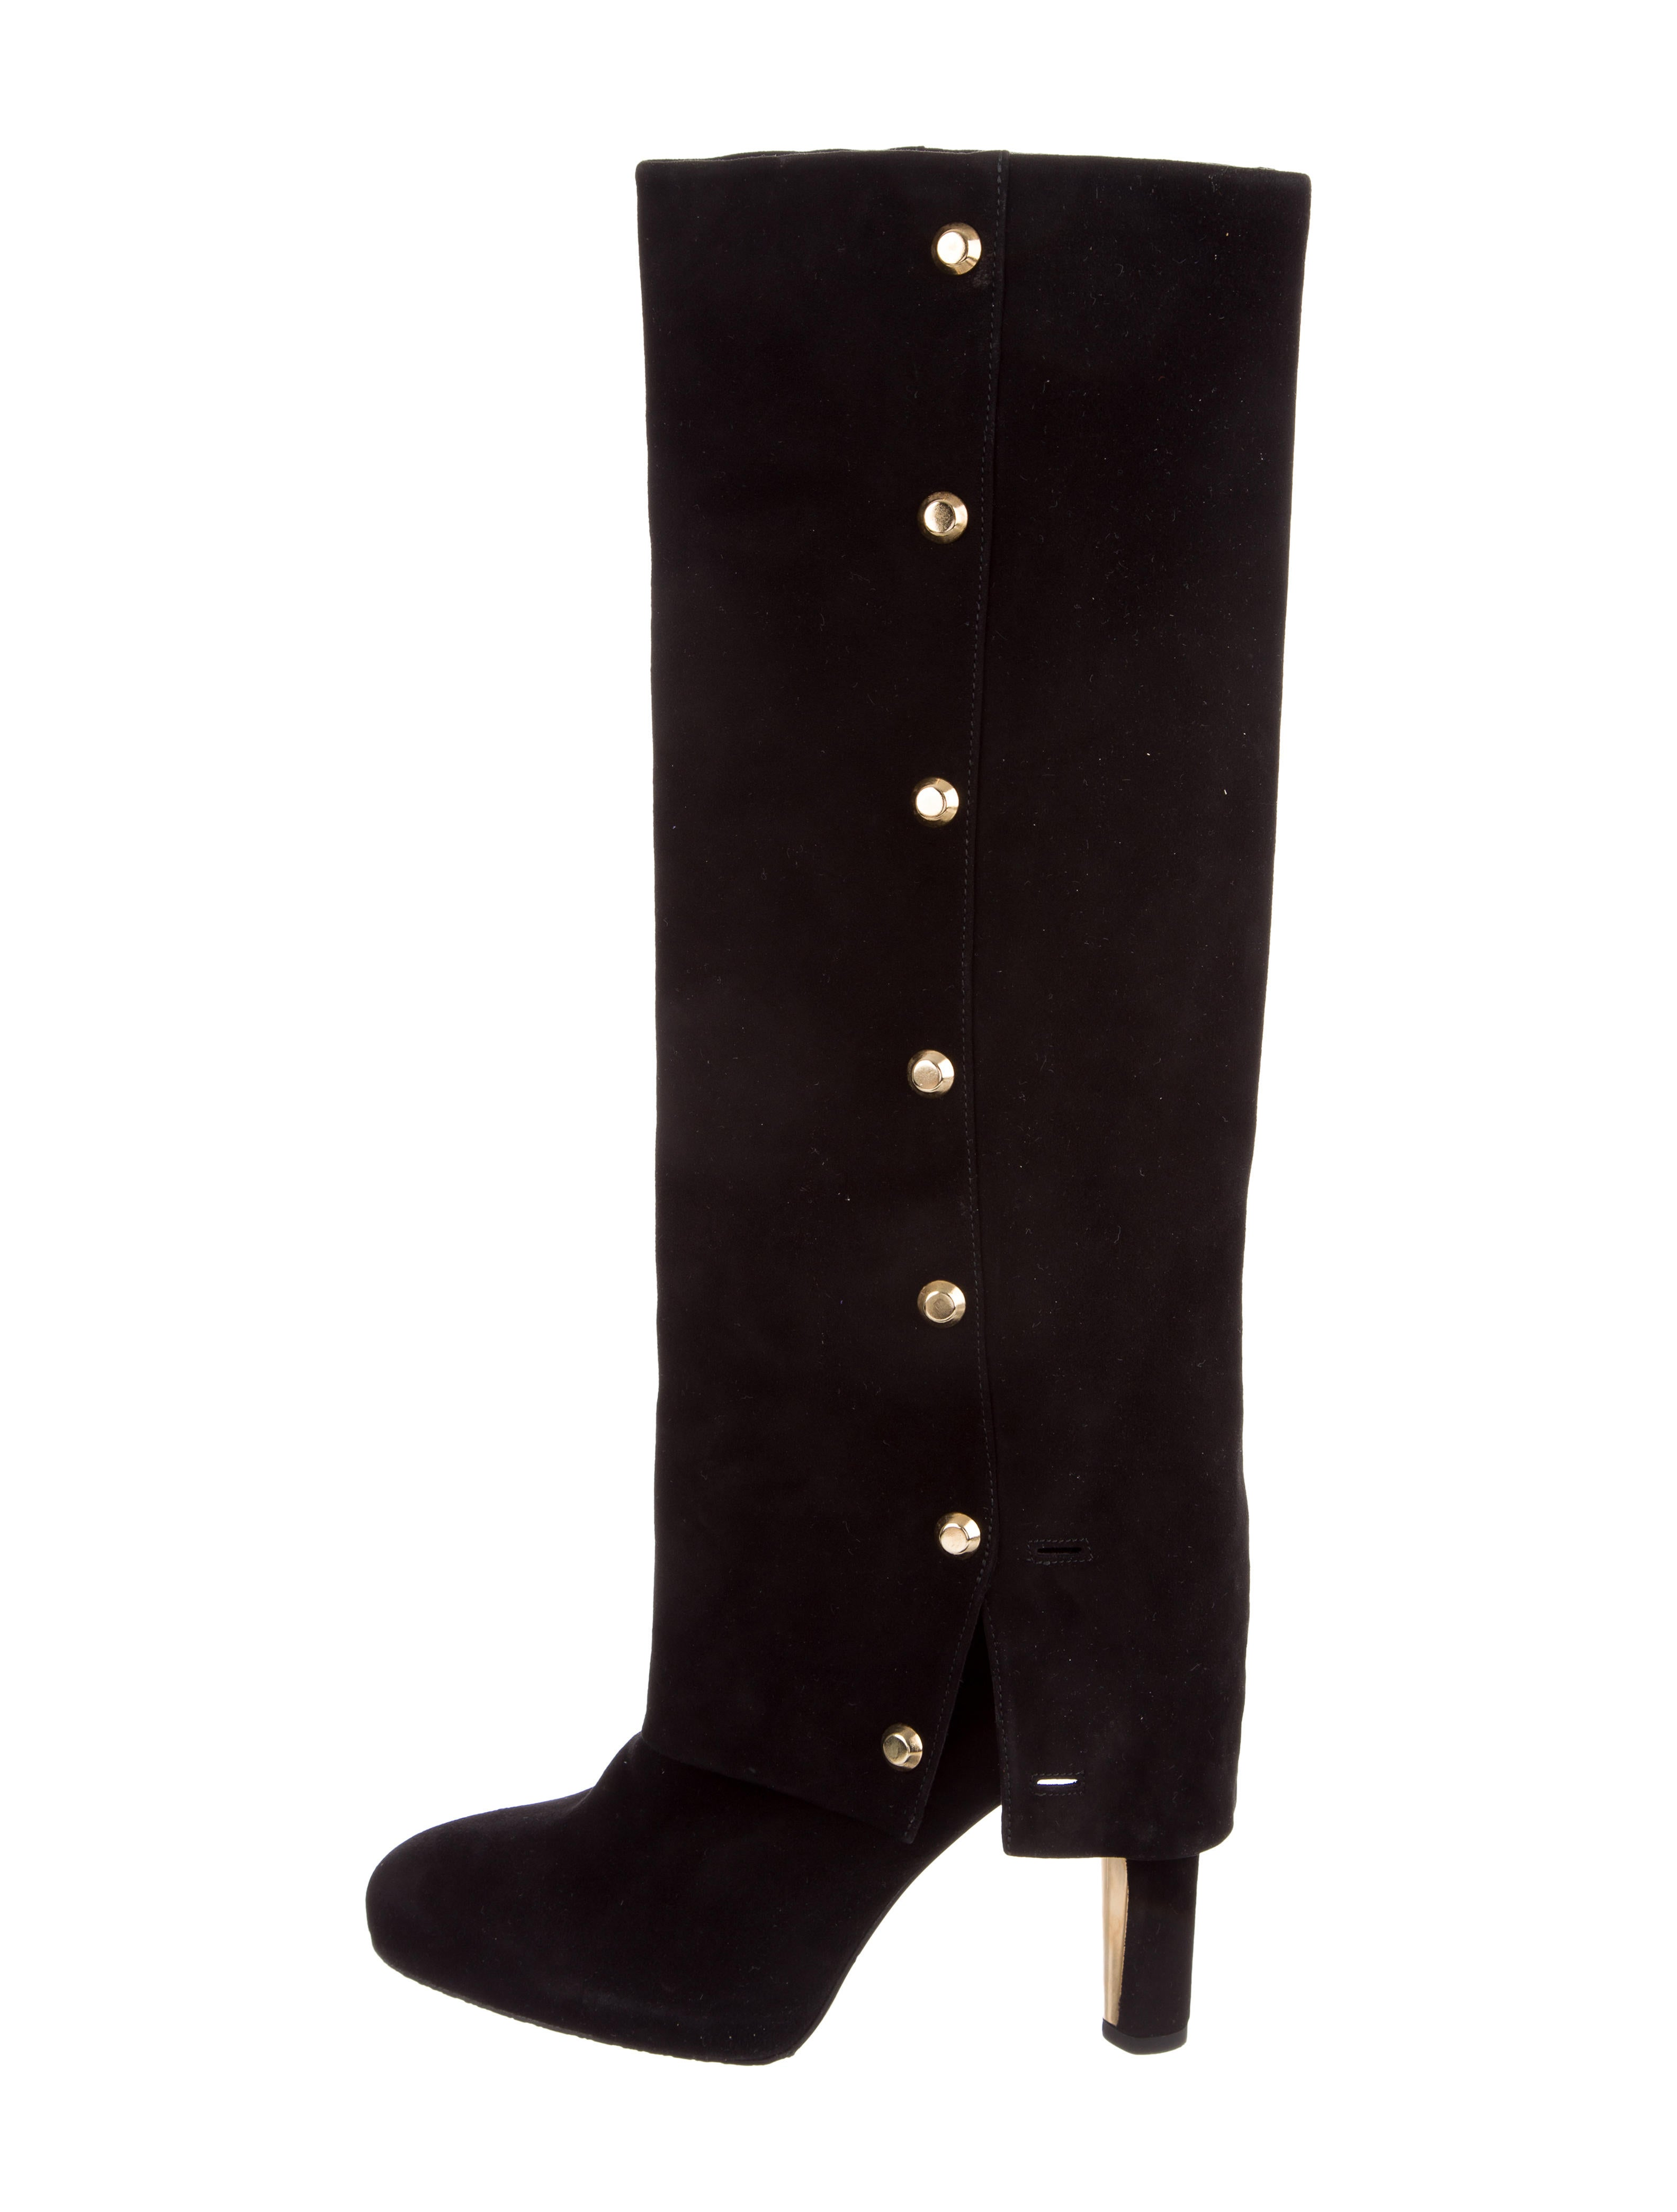 clearance original with credit card for sale Stuart Weitzman Spats Knee-High Boots 100% guaranteed cheap price cheap sale classic uNl72